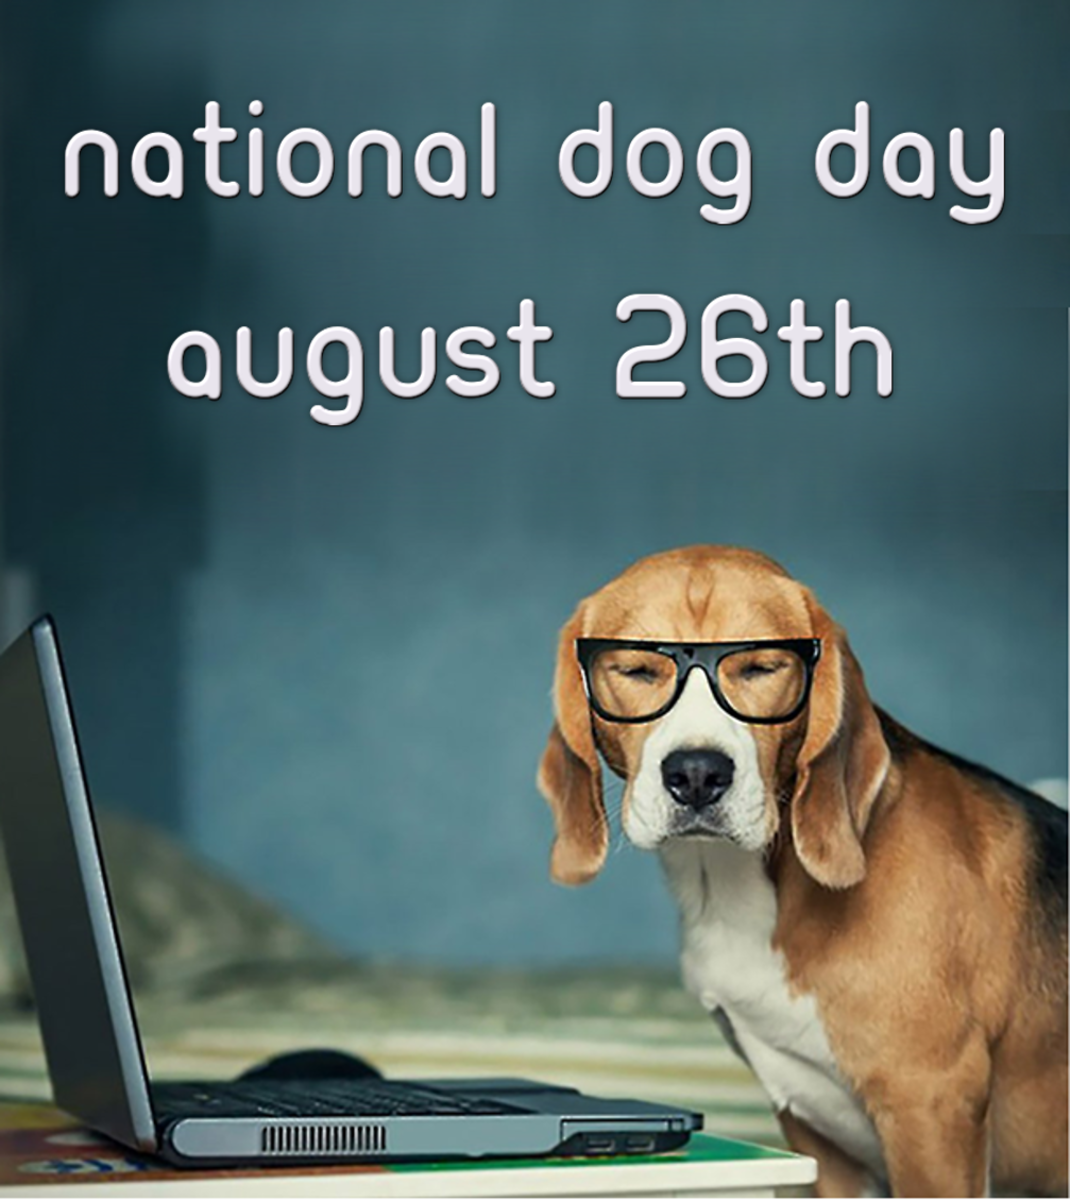 National Dog Day, 26th August